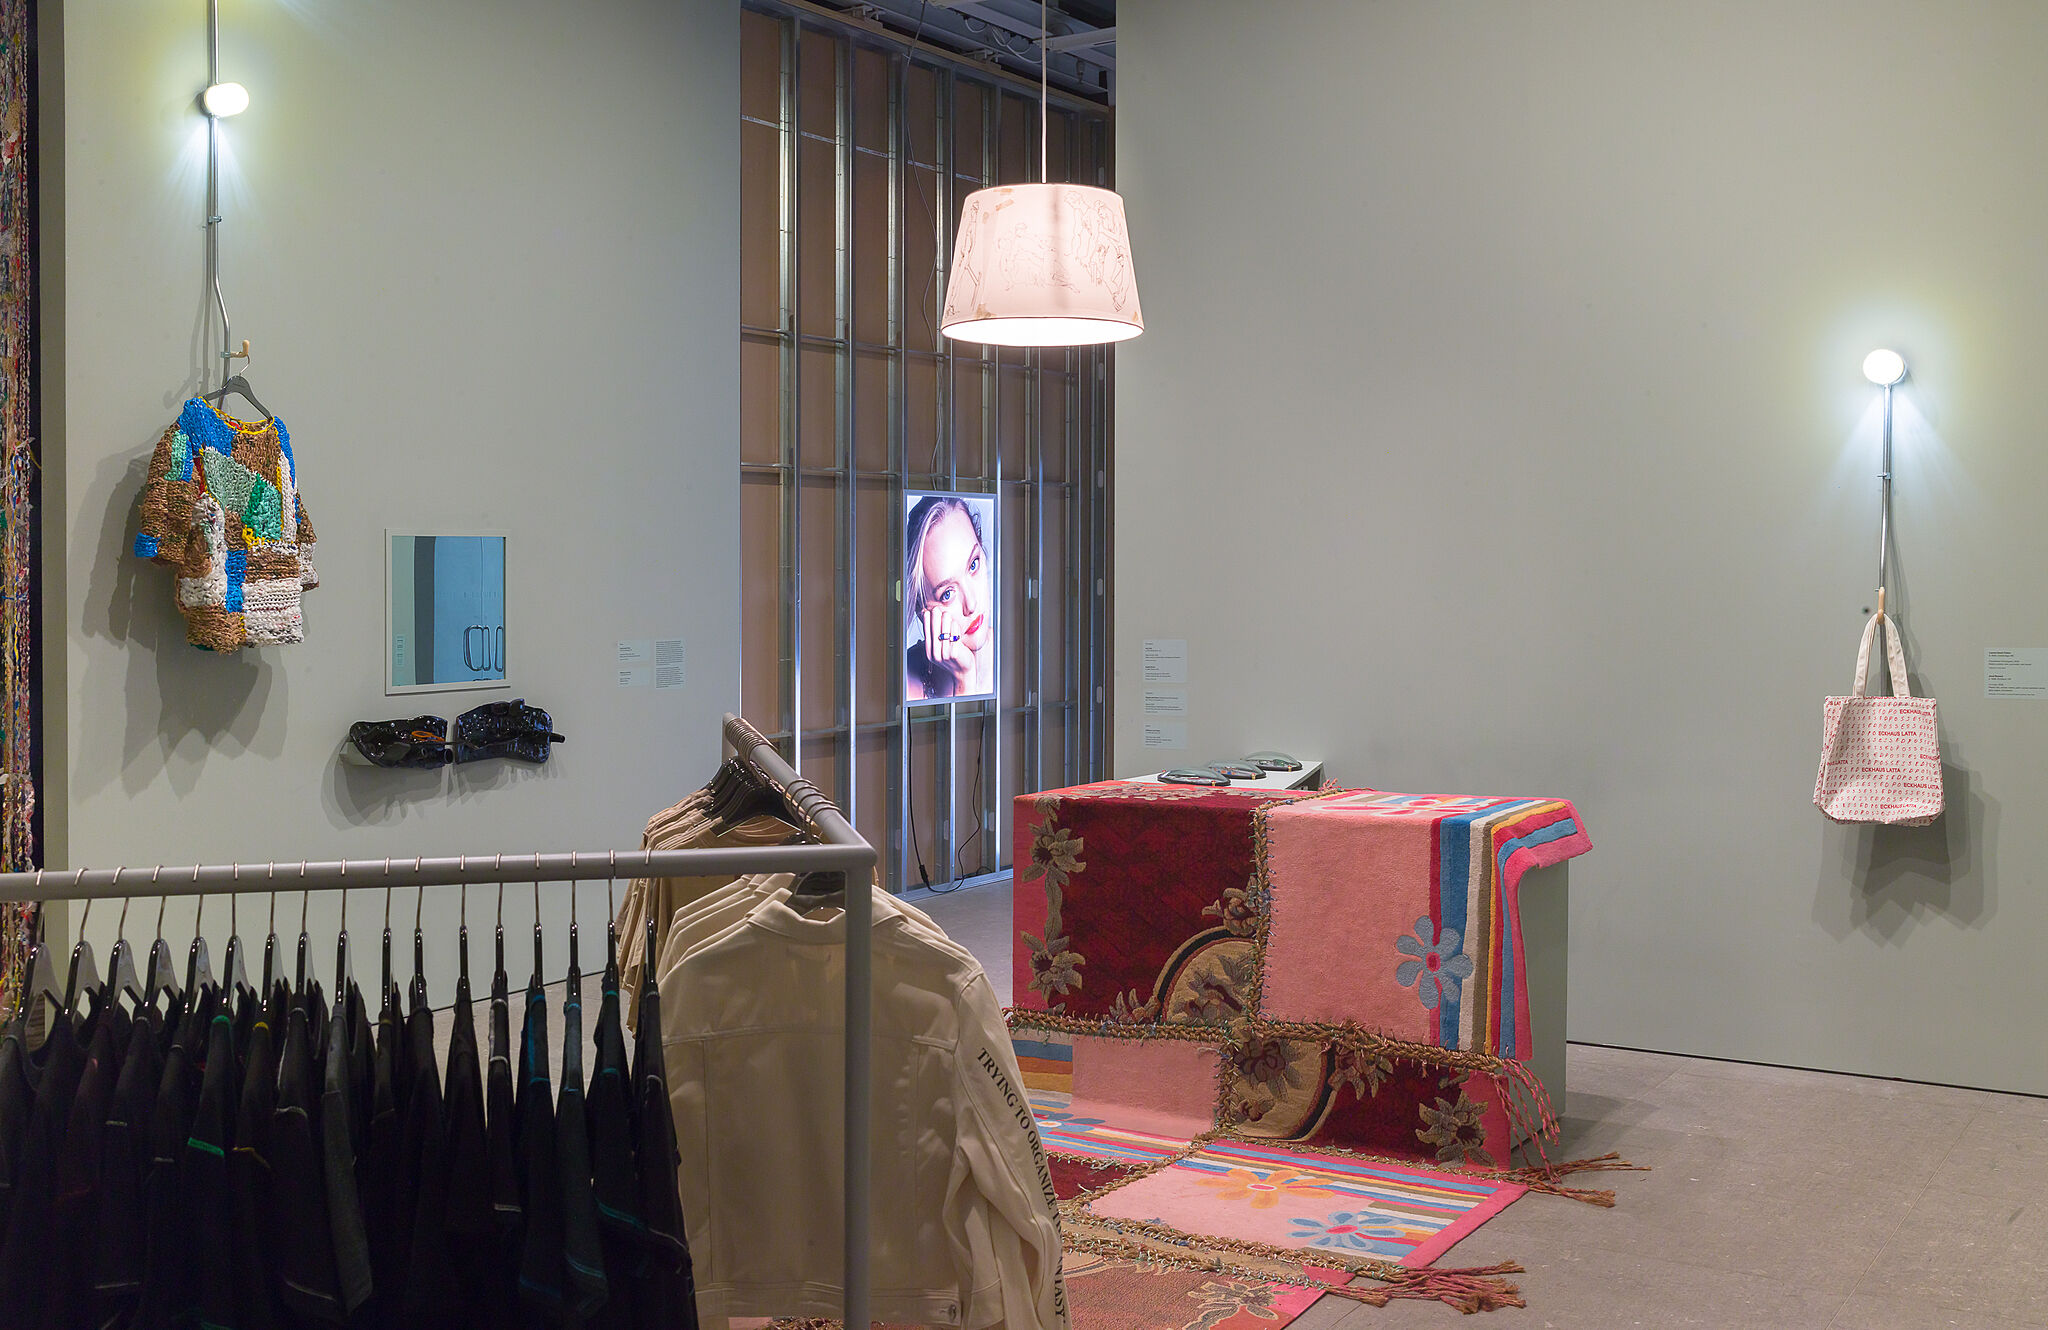 Installation view of Eckhaus Latta: Possessed.